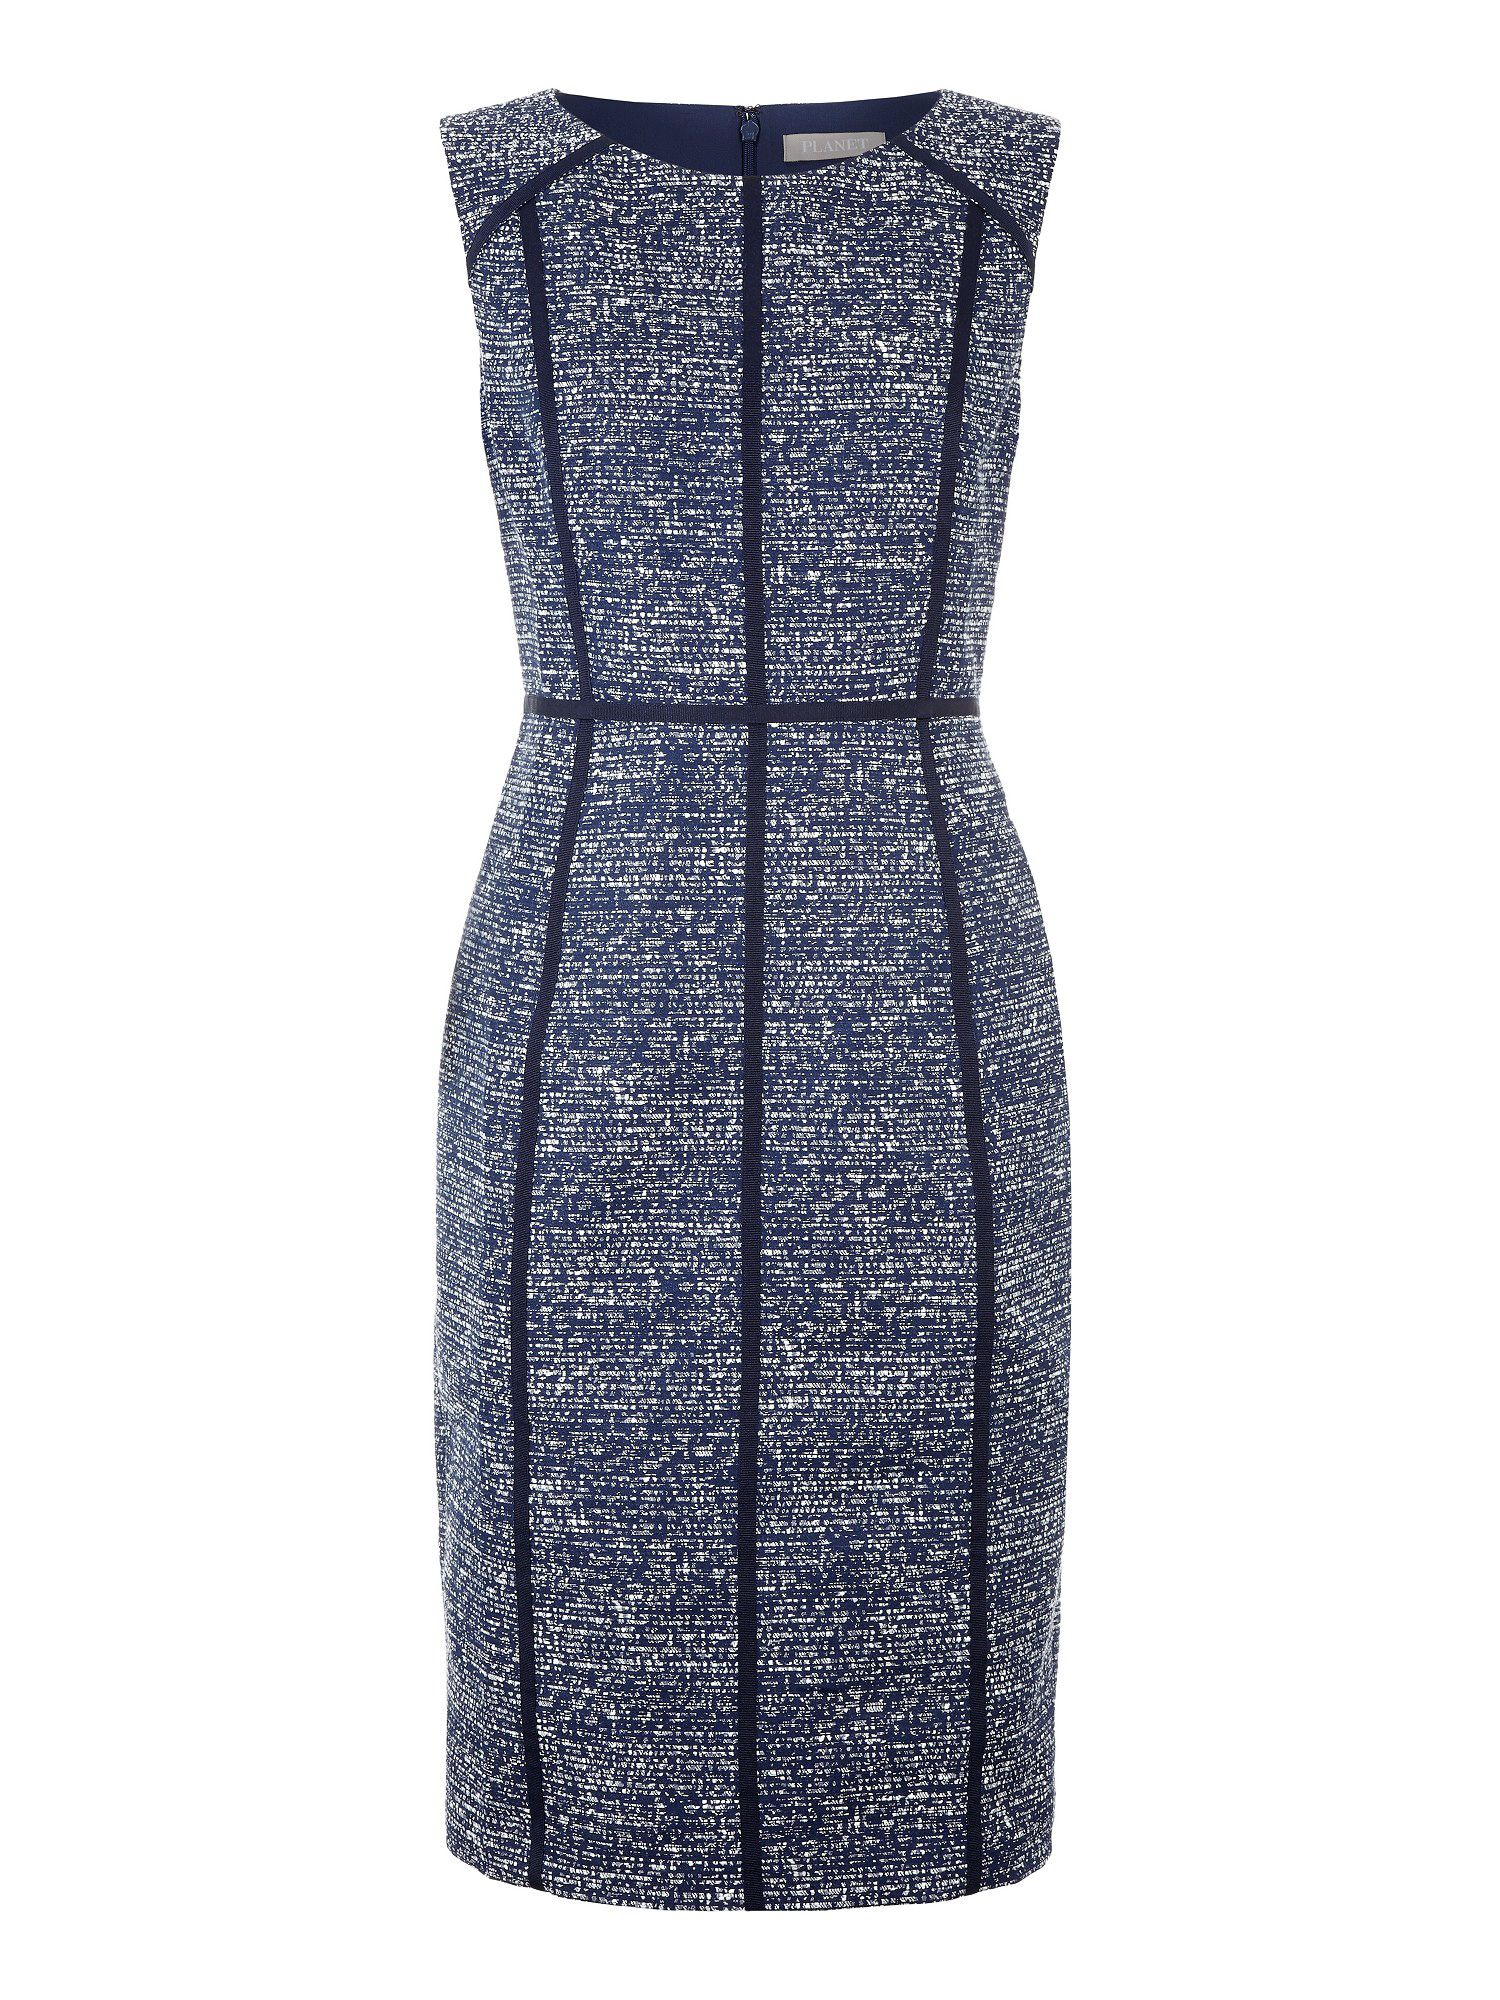 Navy textured dress